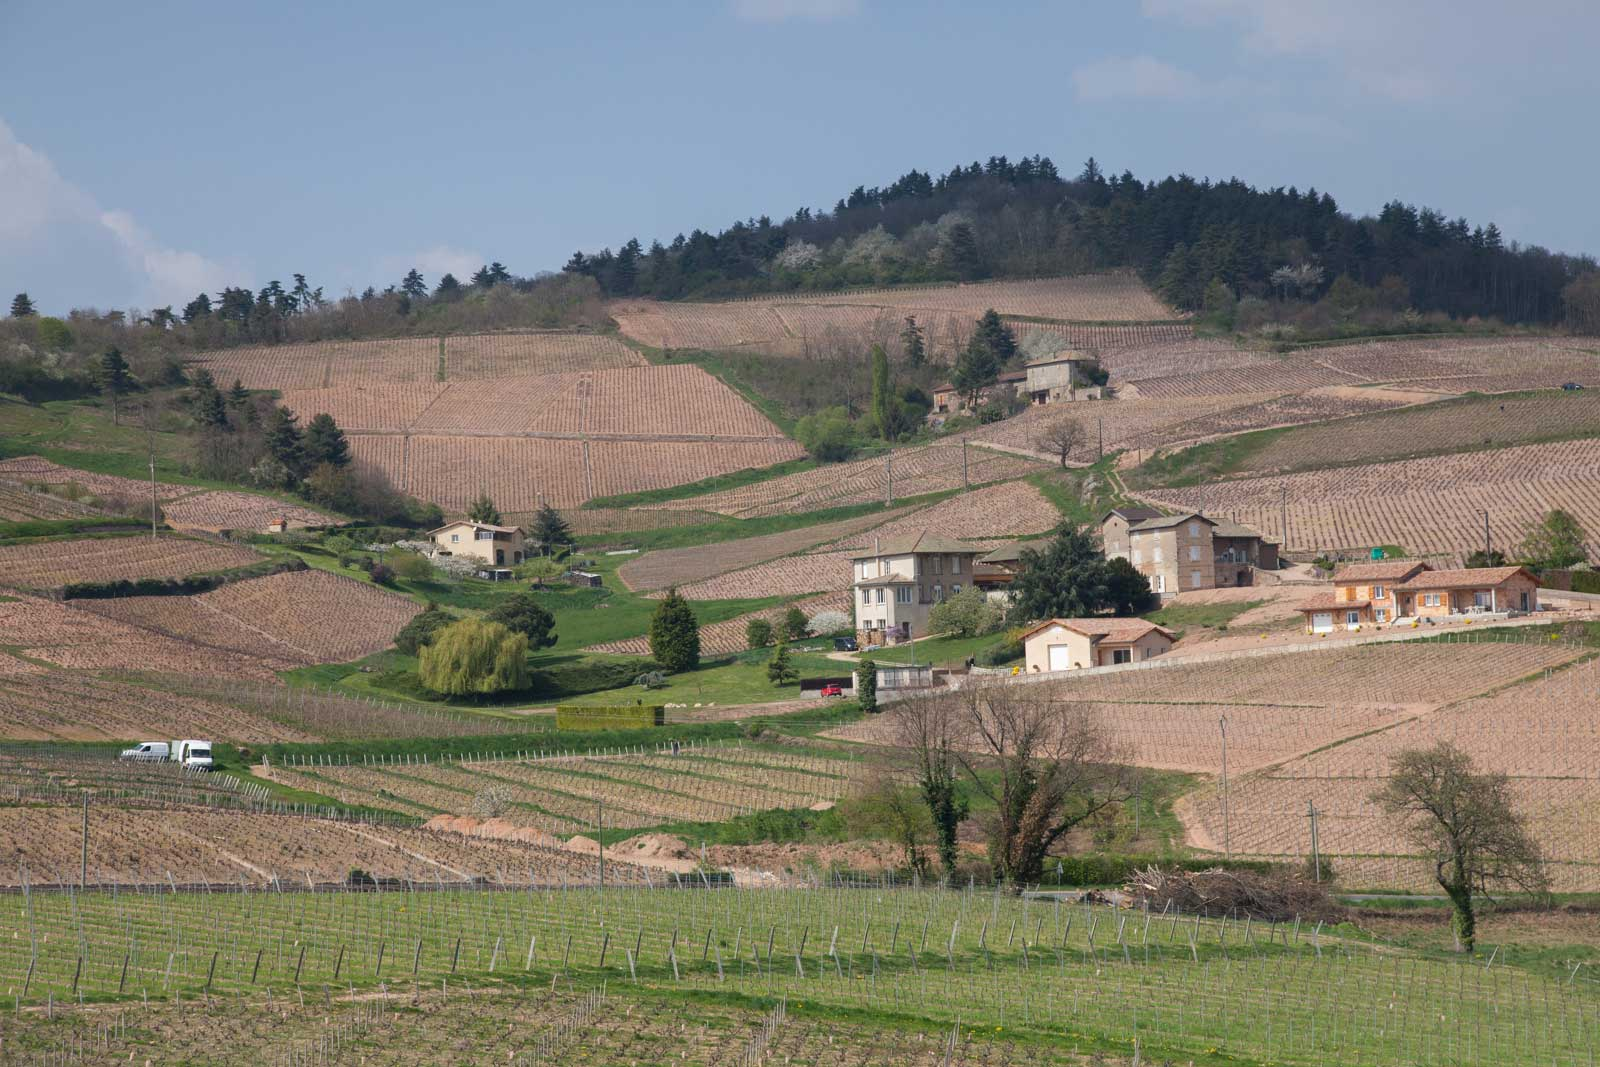 The northern edge of Fleurie. A stream drains off of this slope and separates the appellation from its neighbor, Moulin-à-Vent. ©Kevin Day / Opening a Bottle